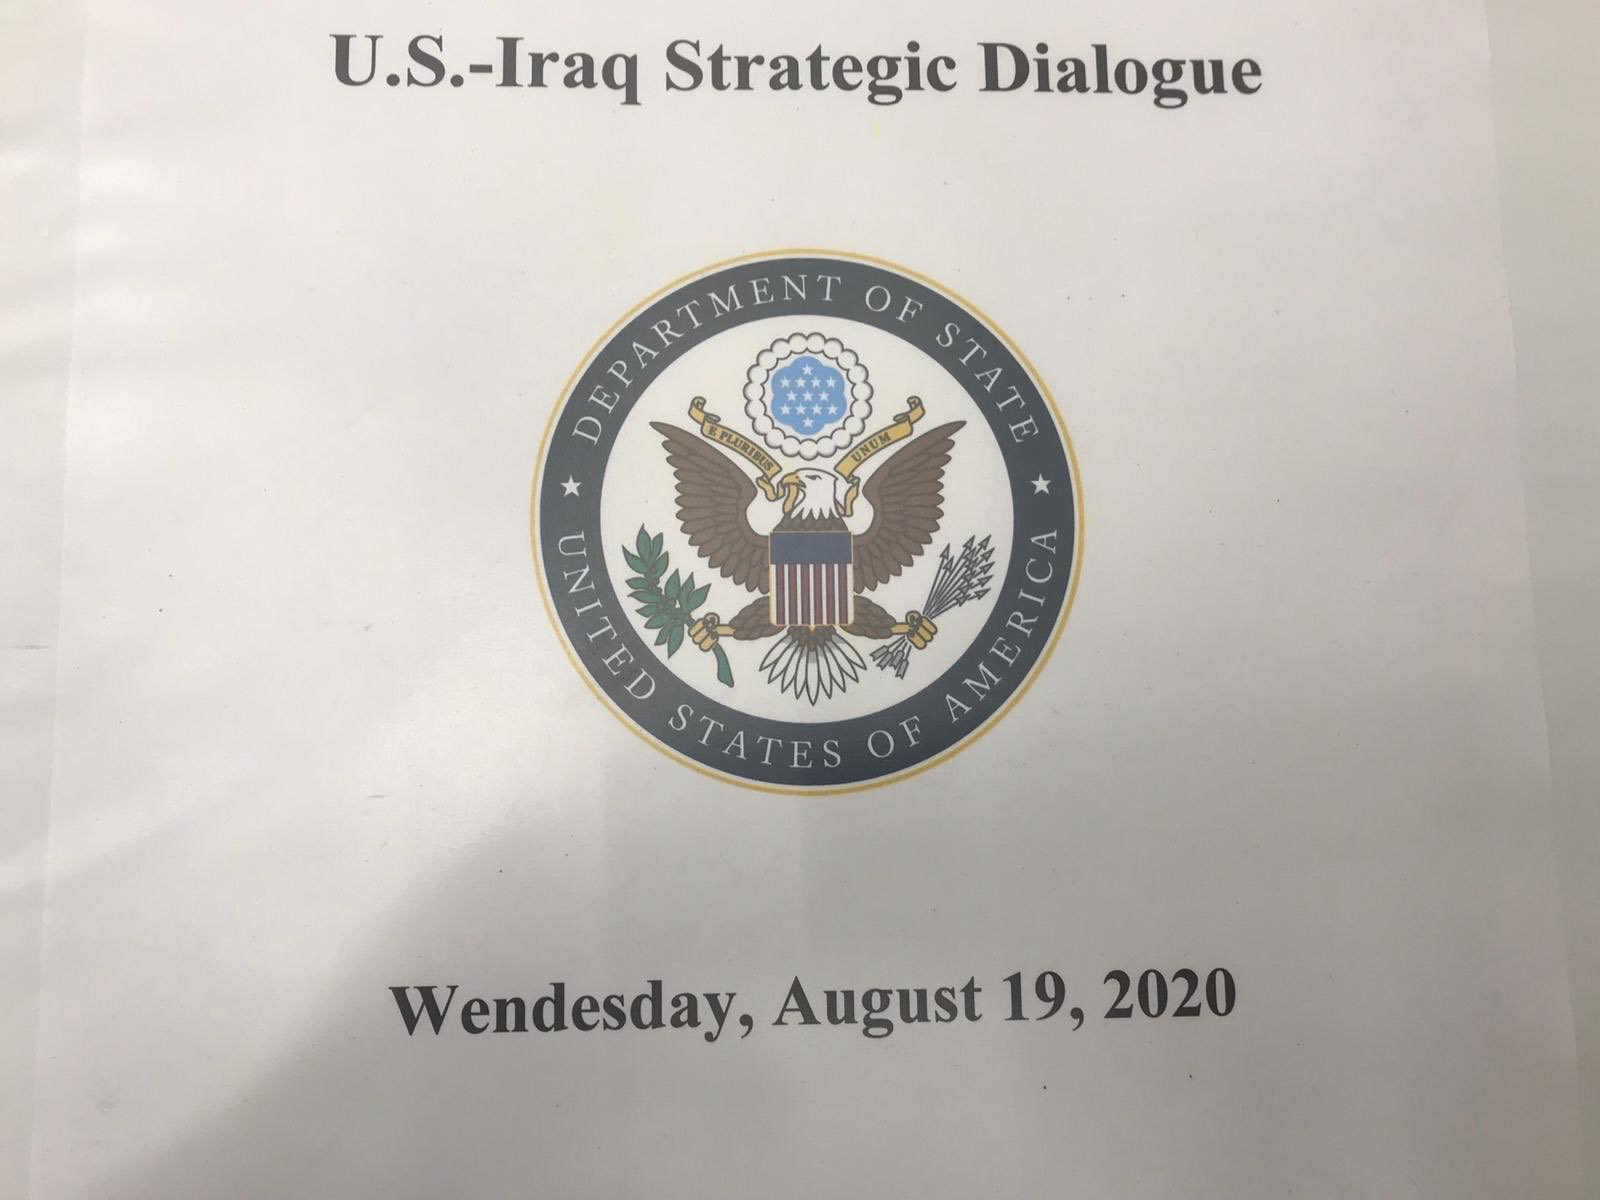 An American-Iraqi strategic dialogue: a matter of interests and expectations - Page 3 Image